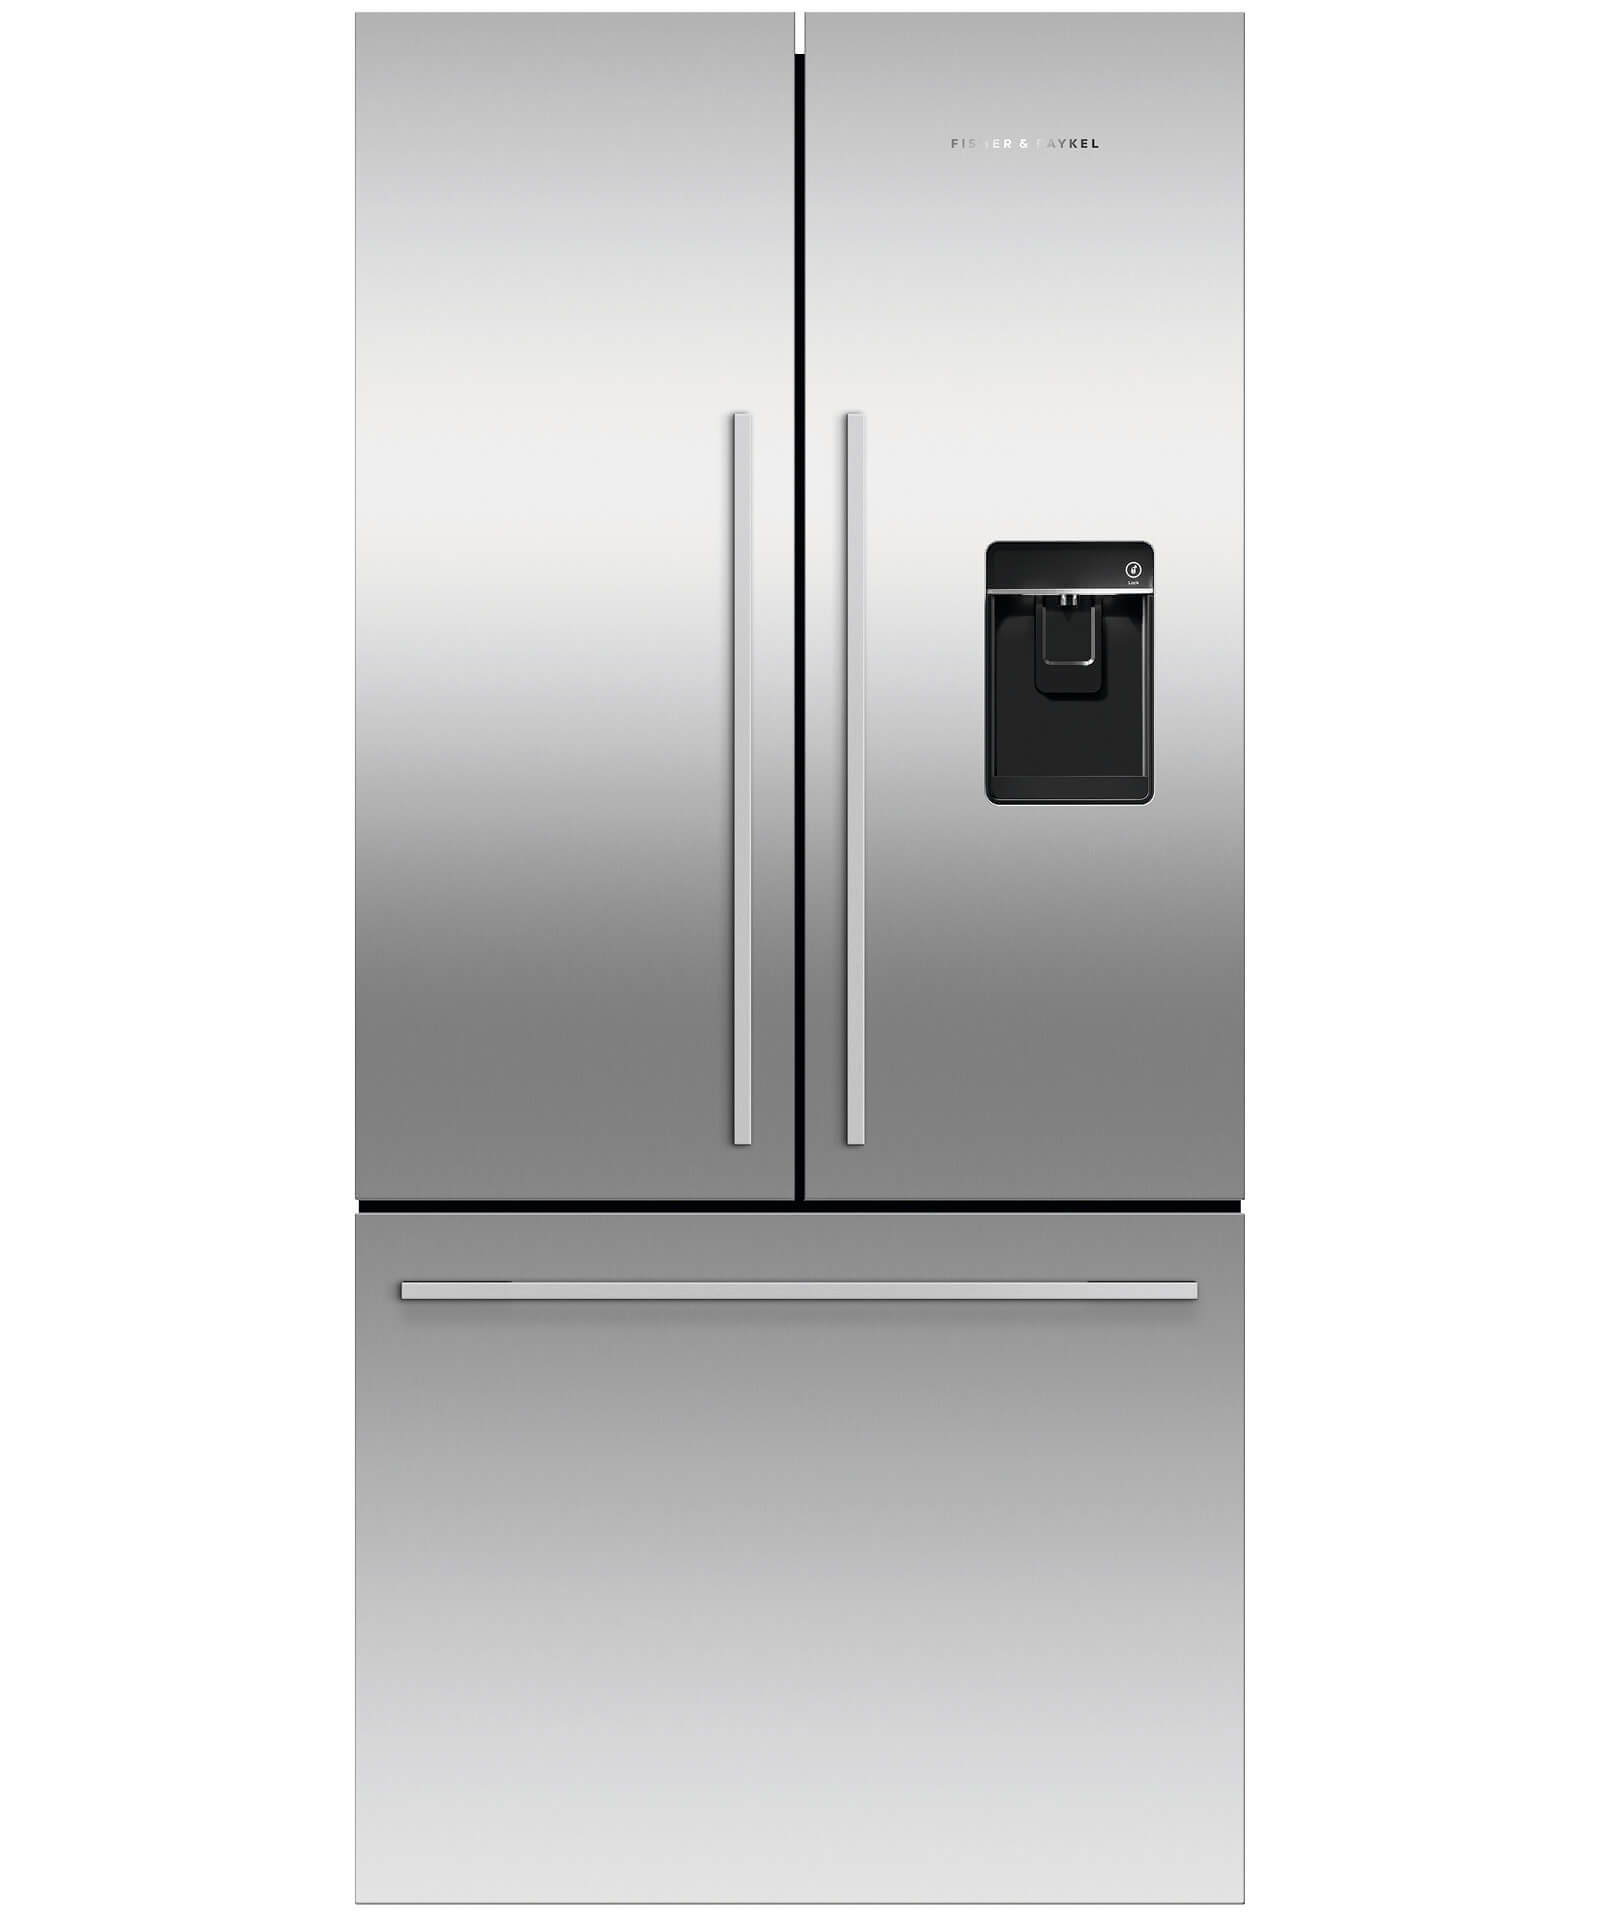 Factory second Fisher and Paykel French Door Fridges Black French Door Fridge, 900mm, 519L, Ice & Water RF522ADUB5FSA